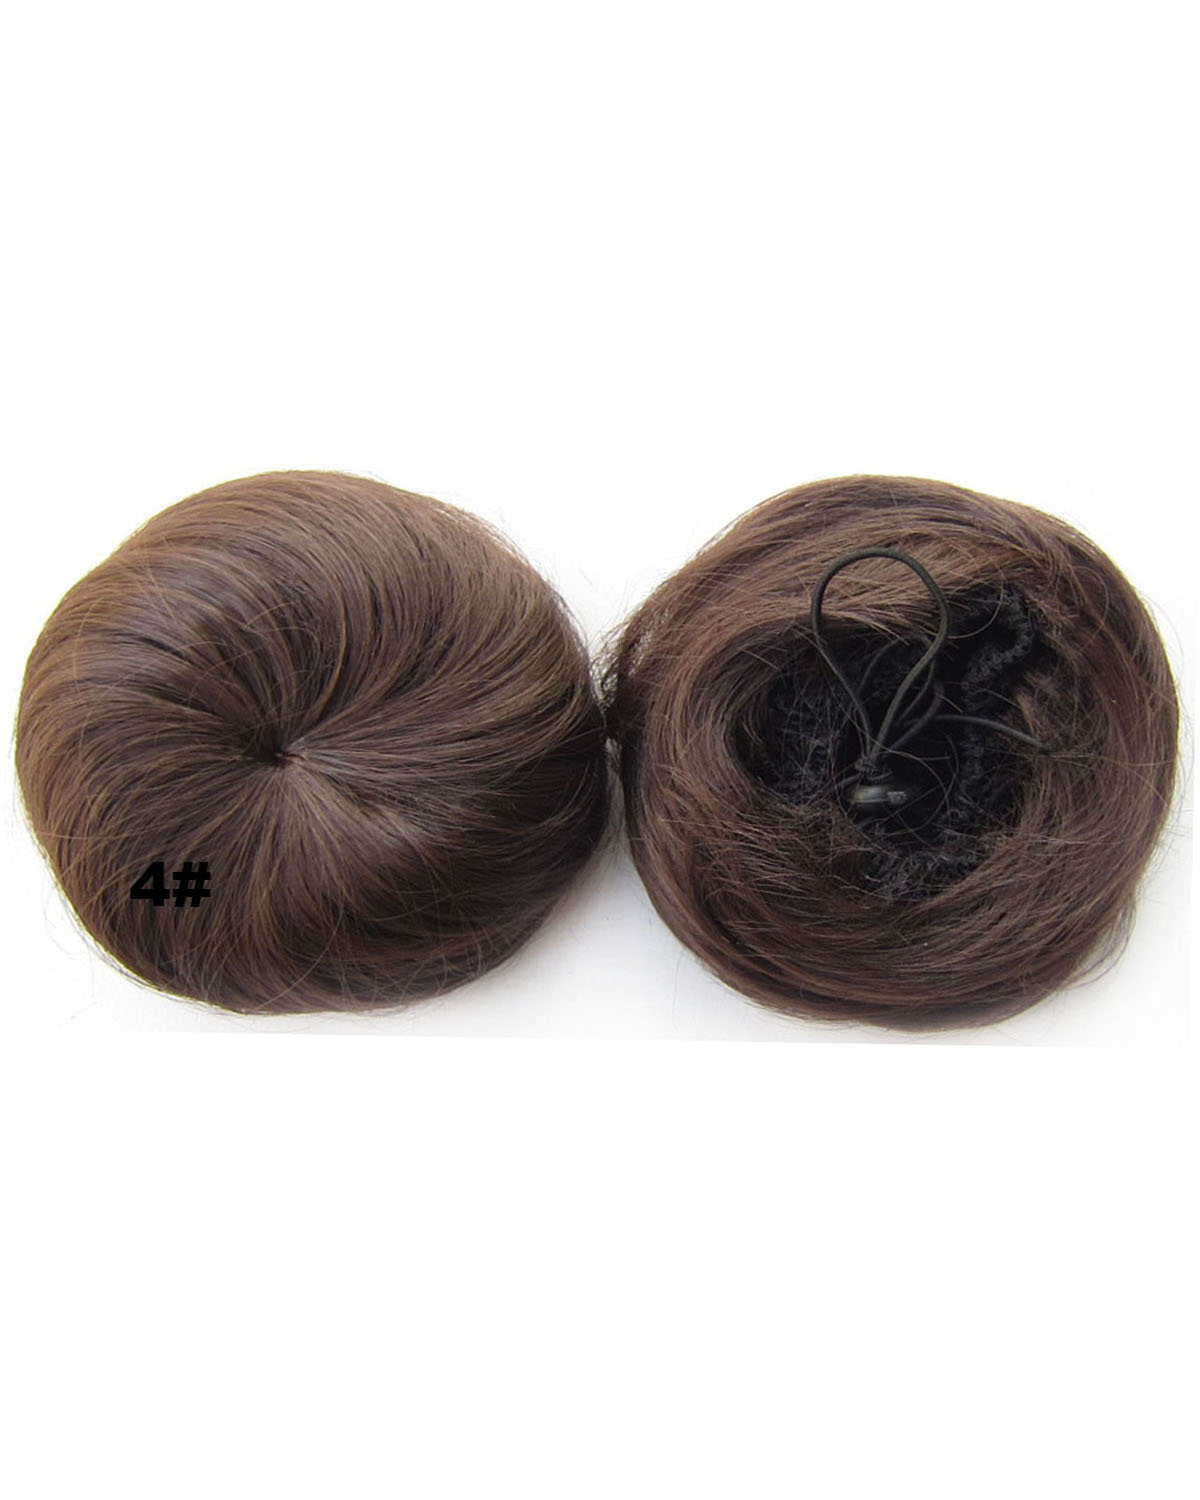 Ladies Fascinating Straight Short Hair Buns Drawstring Synthetic Hair Extension Bride Scrunchies 4#